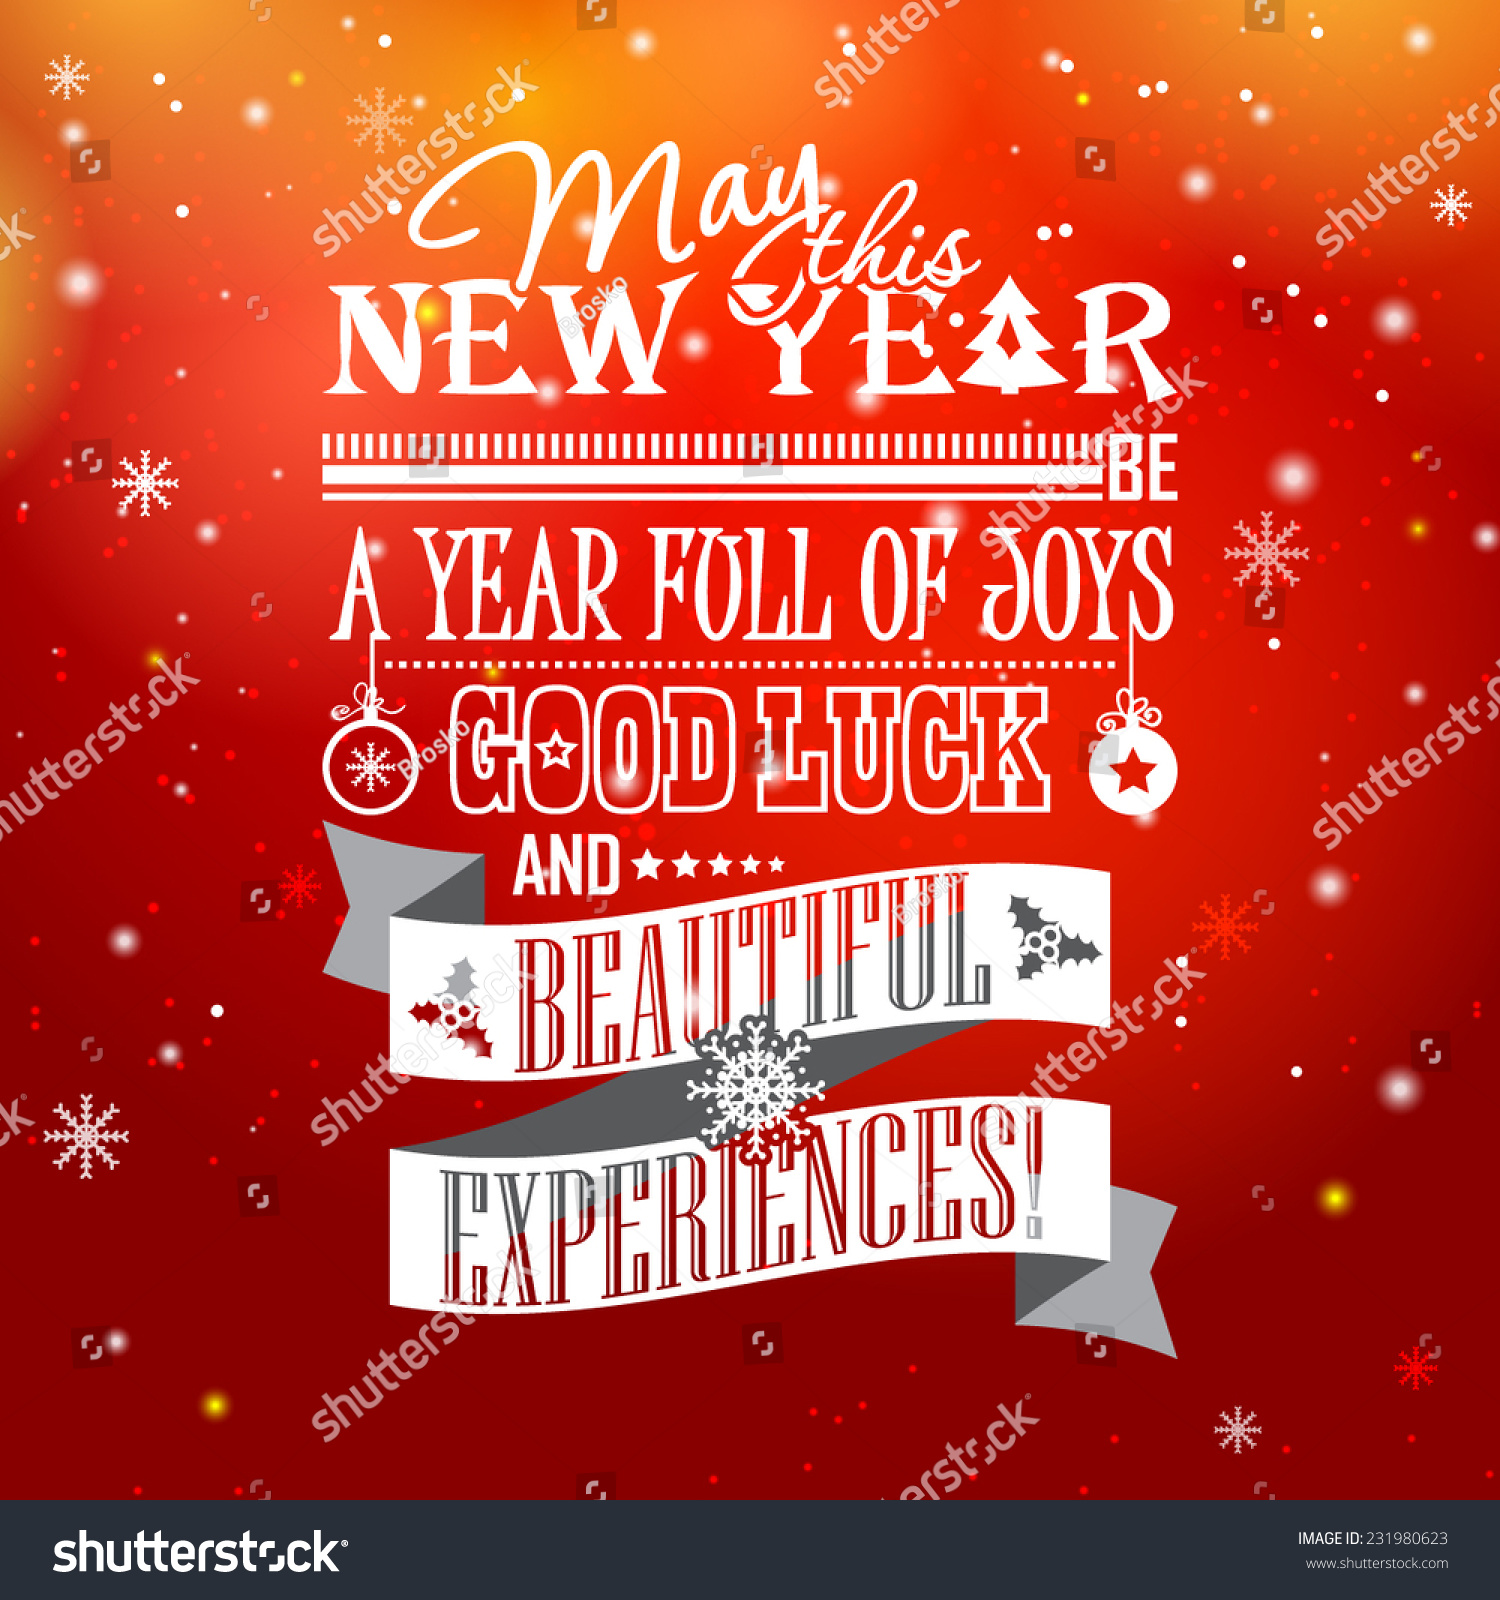 Greeting cards red christmas background lettering stock vector greeting cards red christmas background with lettering light bokeh and snowflakes vector kristyandbryce Gallery